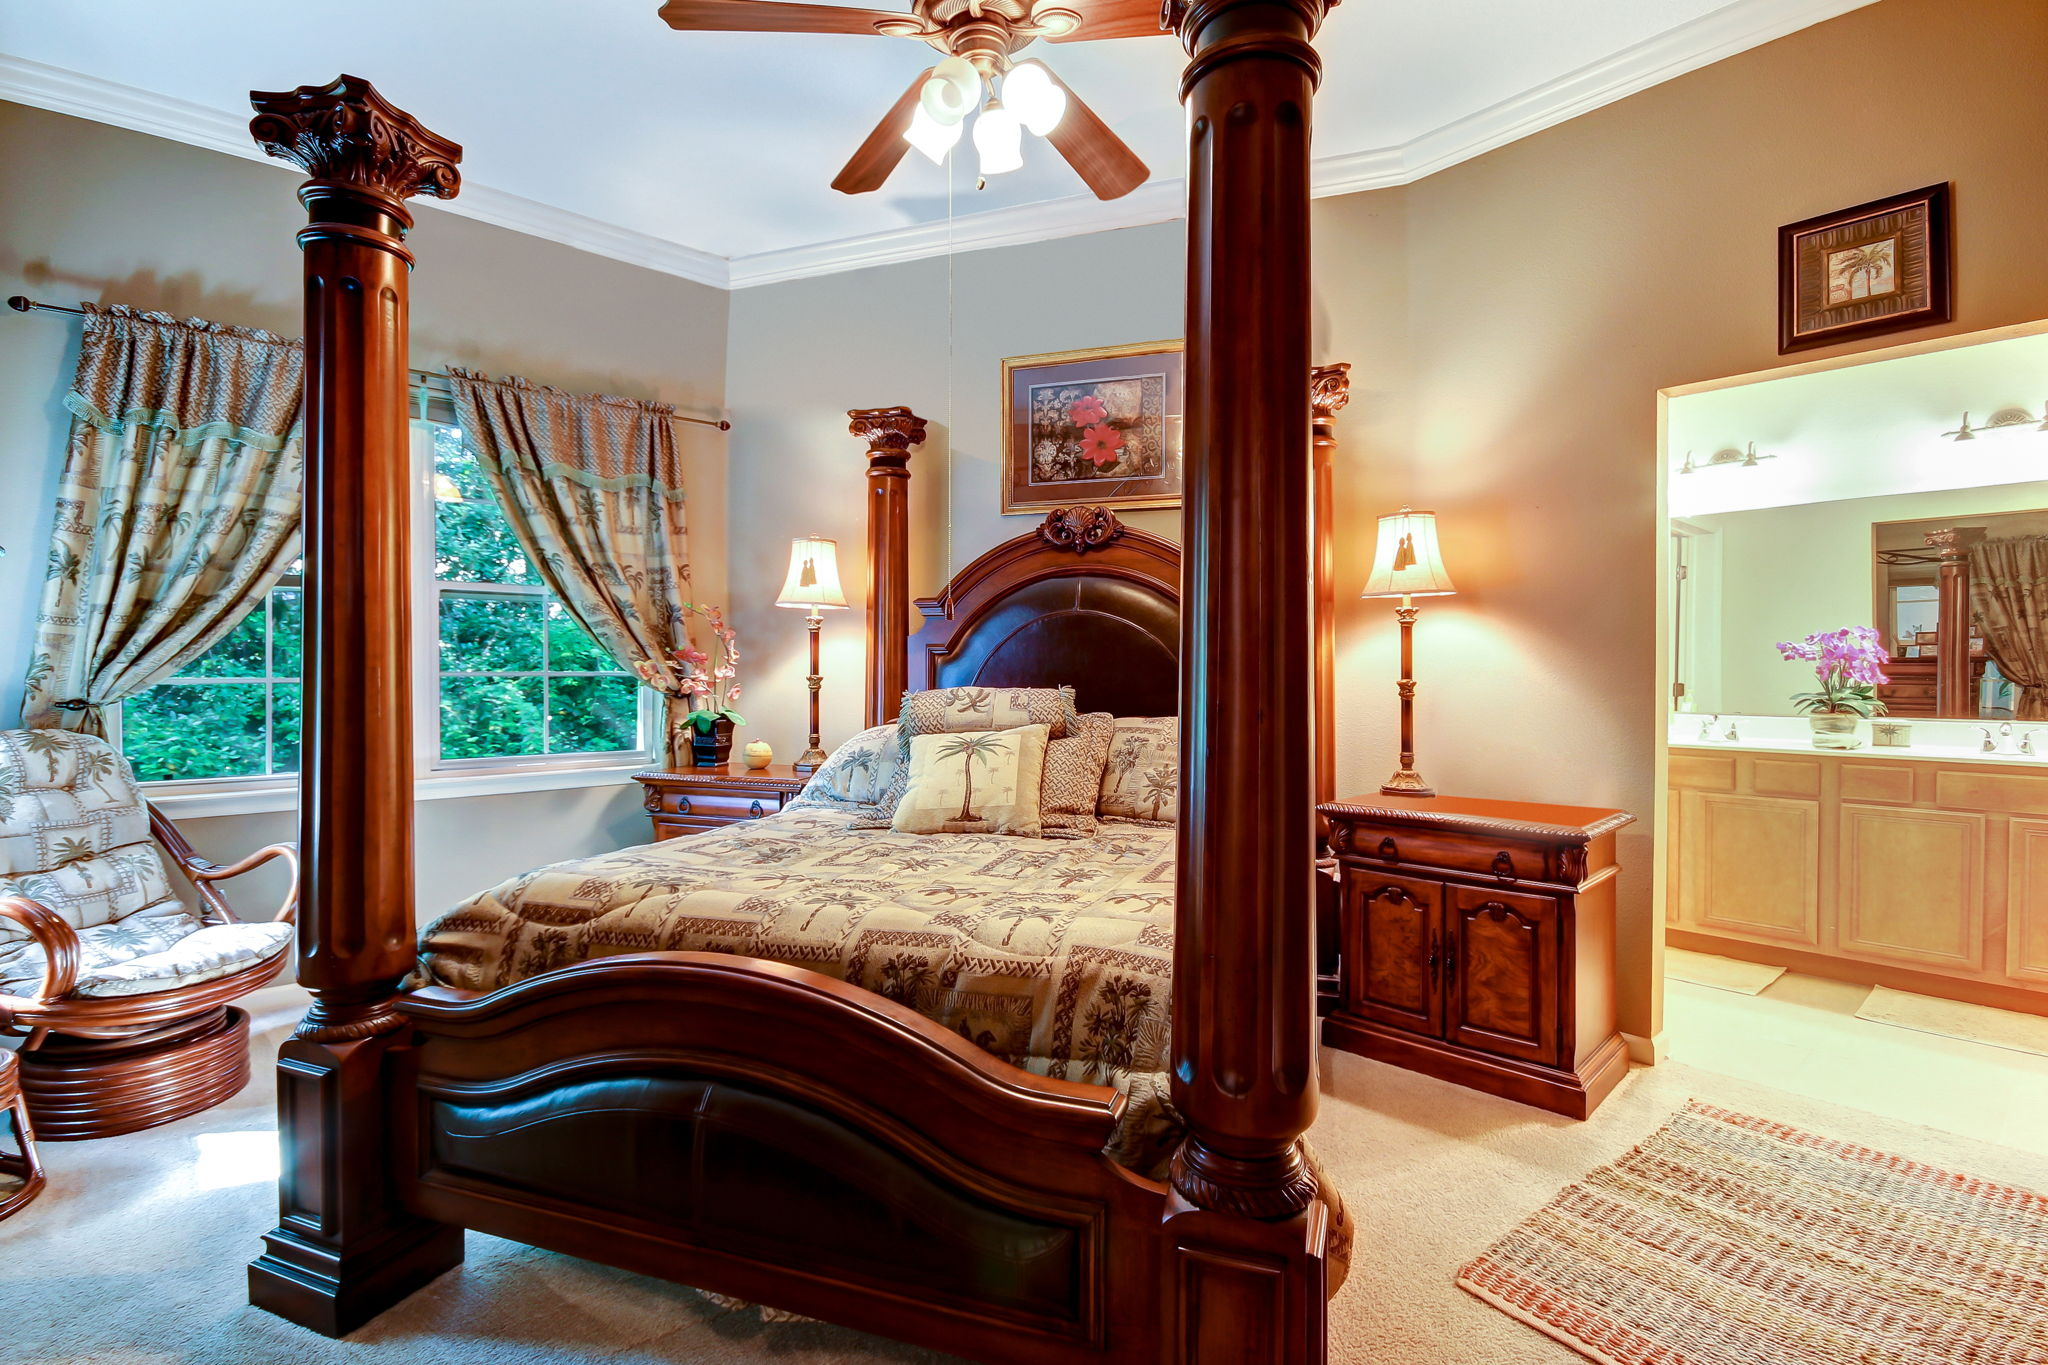 Large master bedroom easily accommodates kingsize bed and nightstands